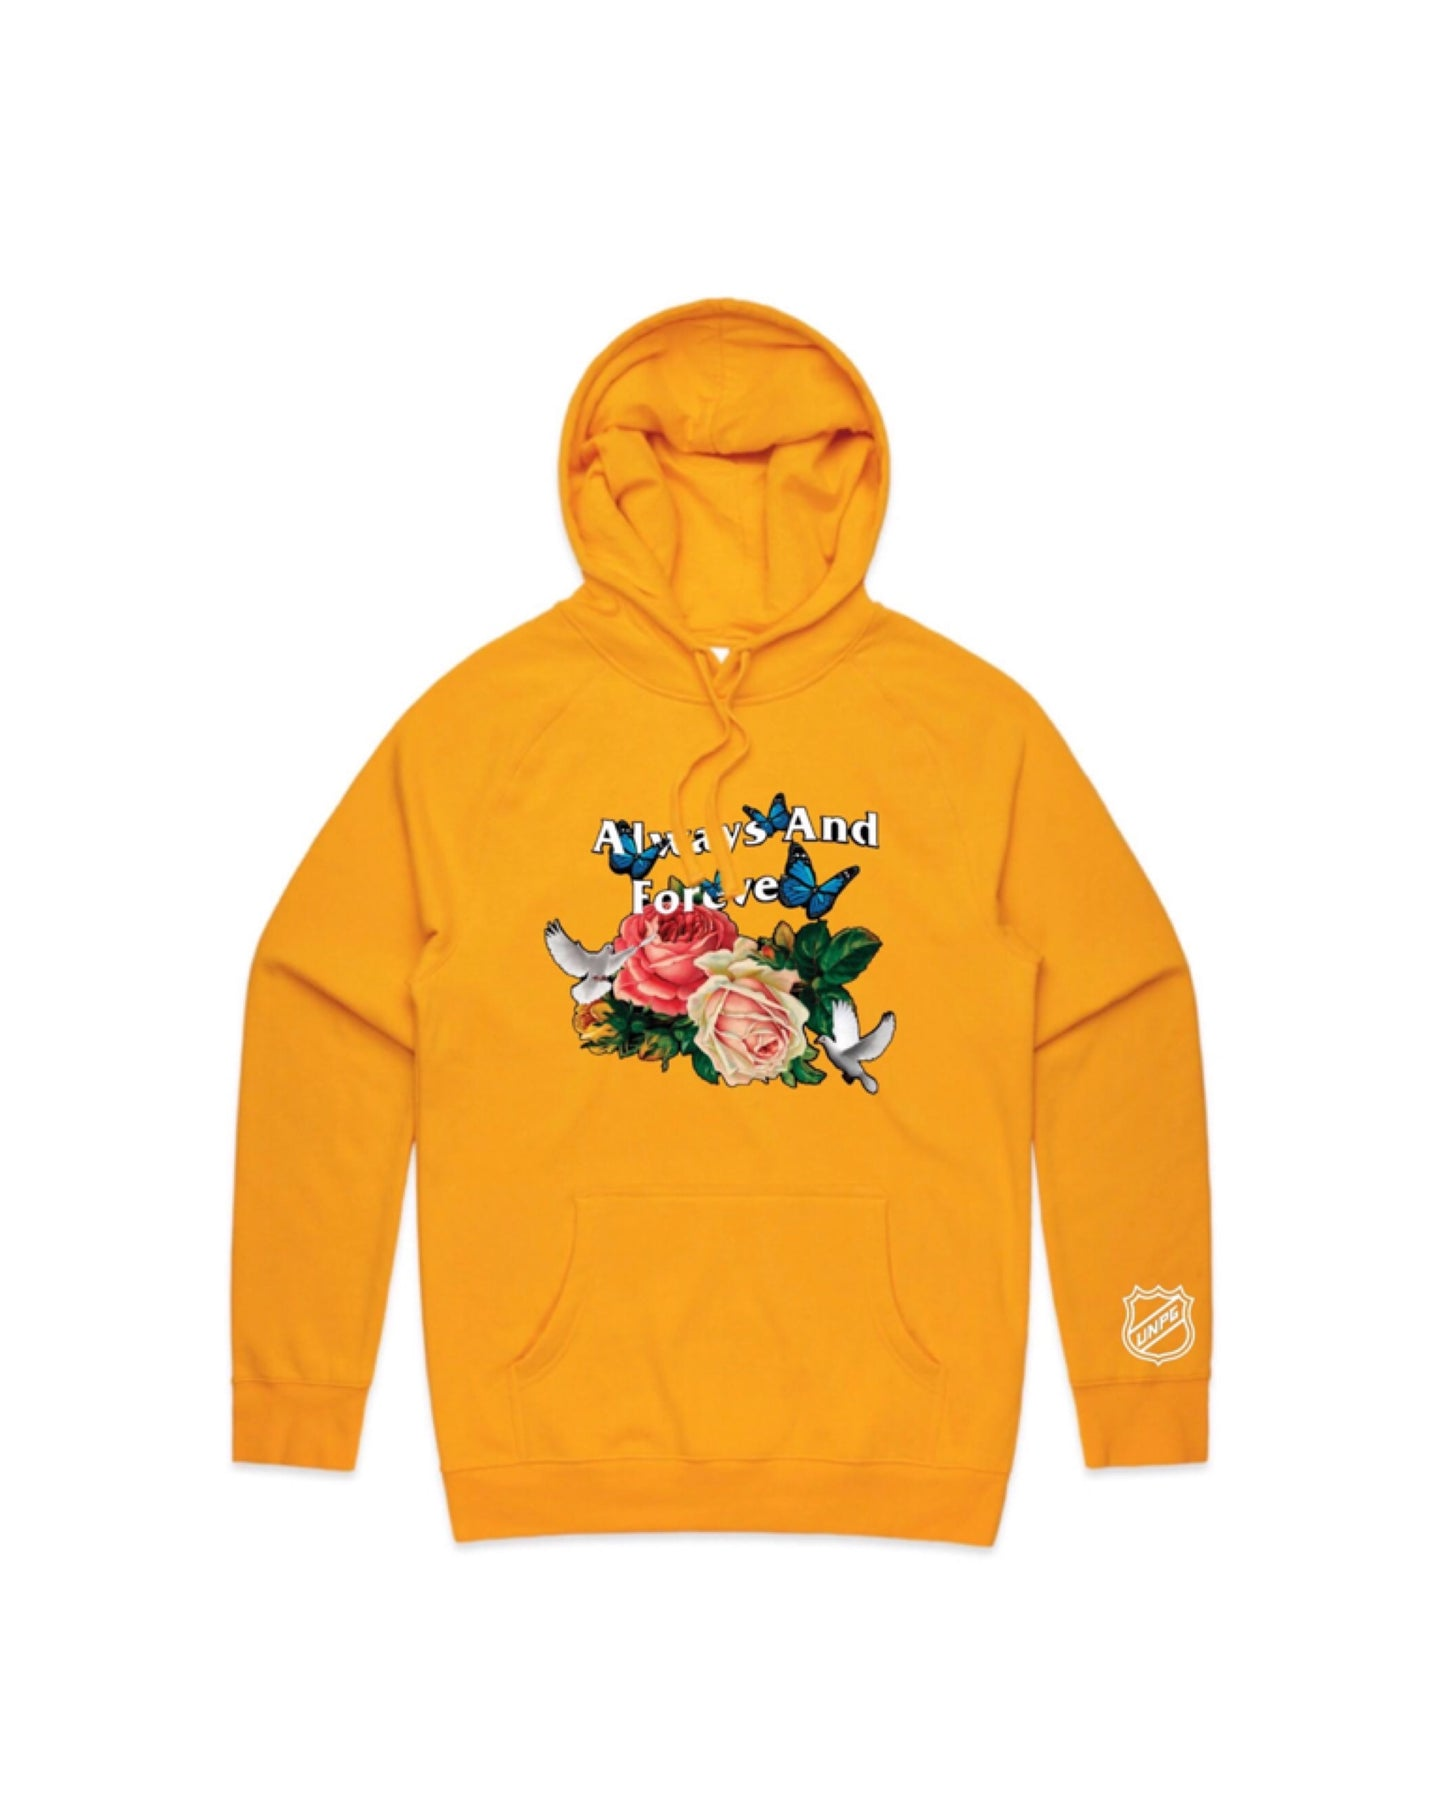 ALWAYS AND FOREVER HOODIE (GOLD)